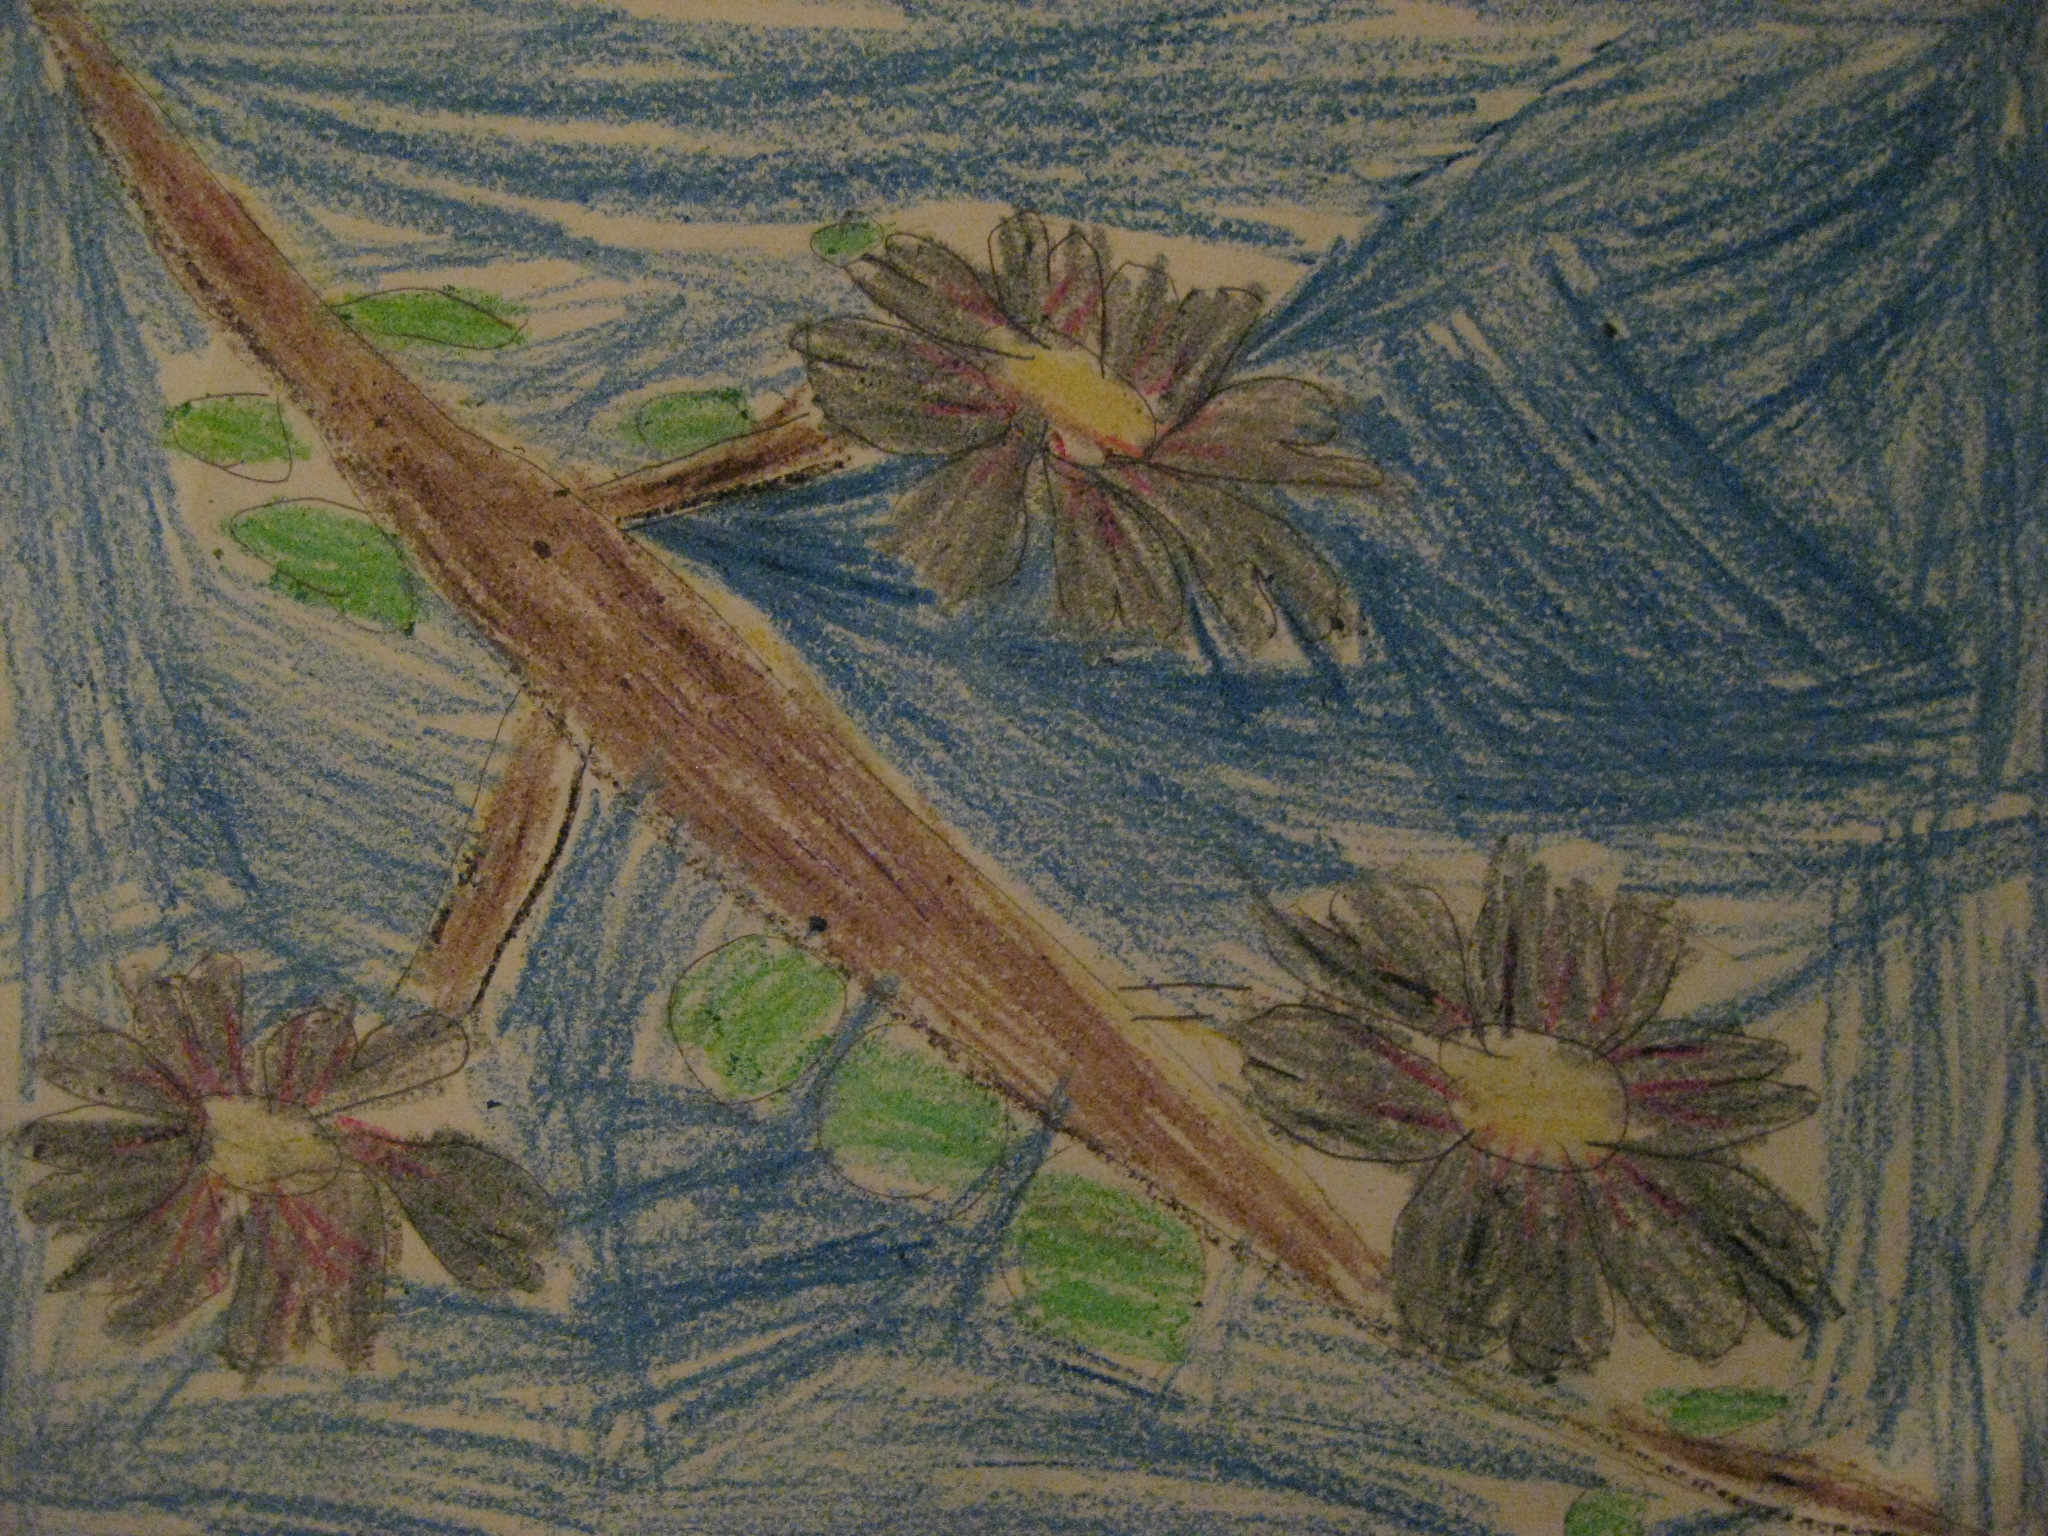 Conquering Clutter: What To Do With Kids' Artwork